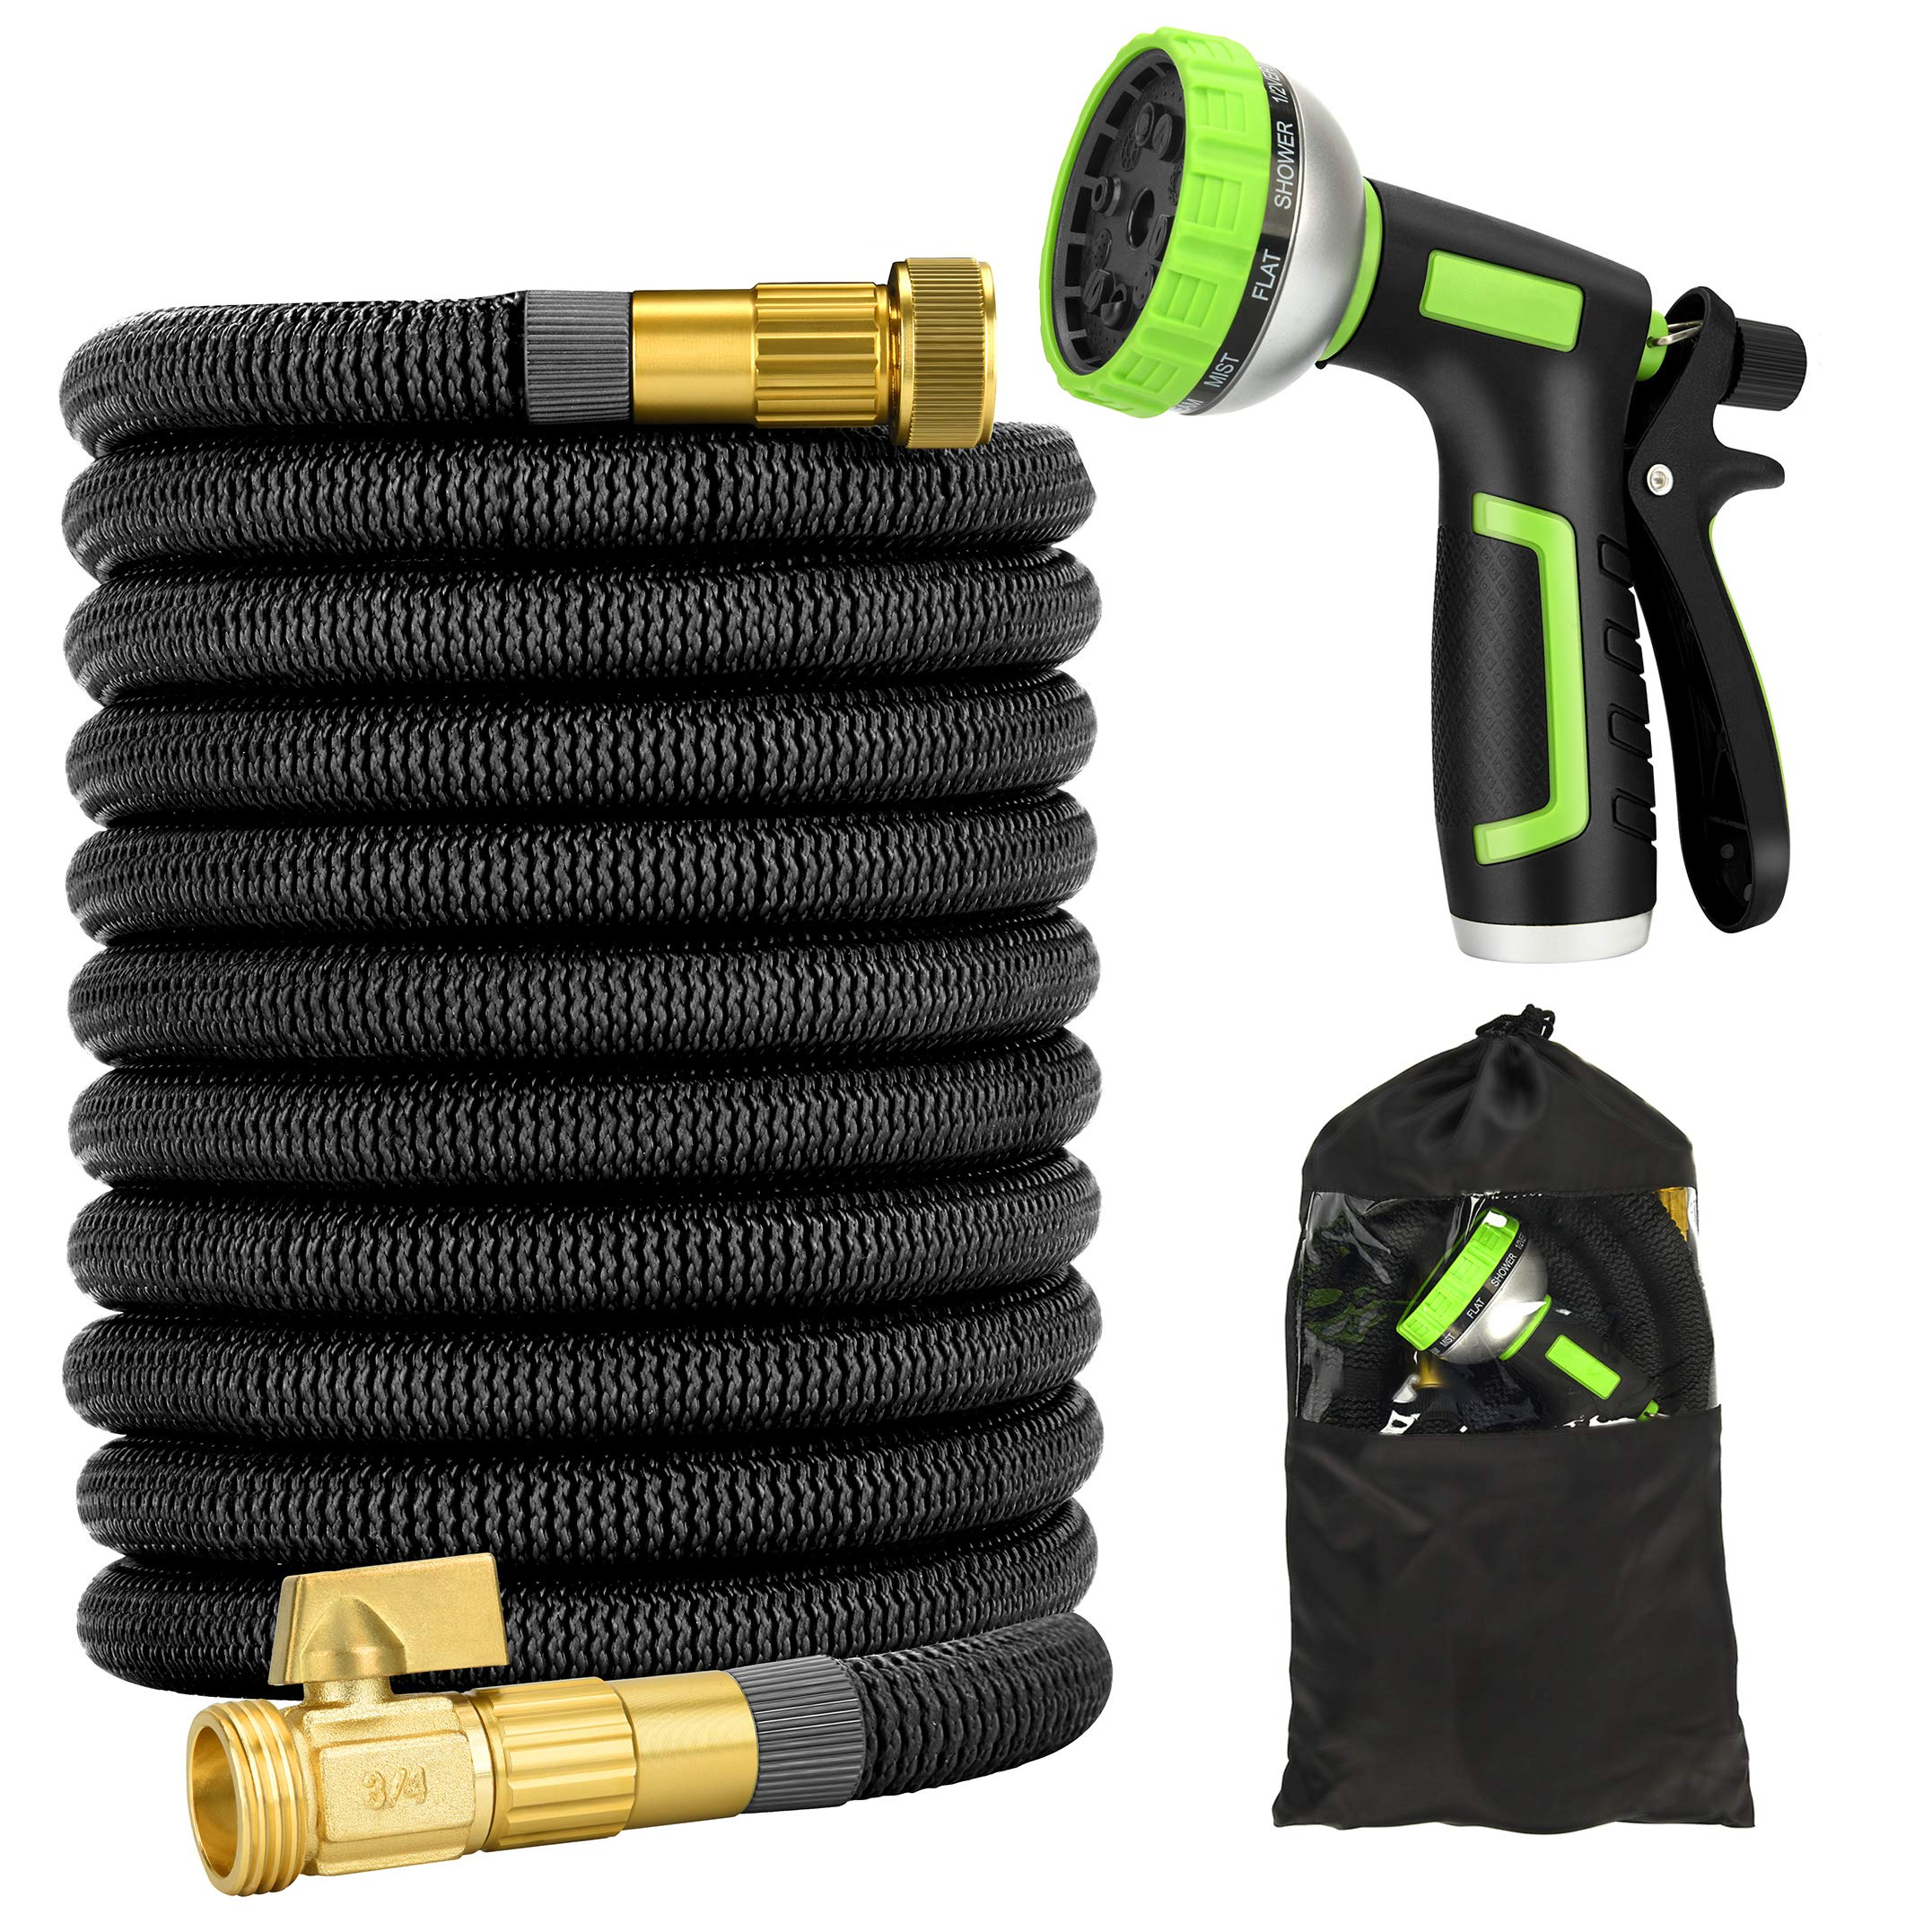 Garden Hose 50ft - Expandable Water Hose with Double Latex Core, Heavy Duty, Light Weight, Flexible Expanding Hose with 10 Function Spray Nozzle (50ft)